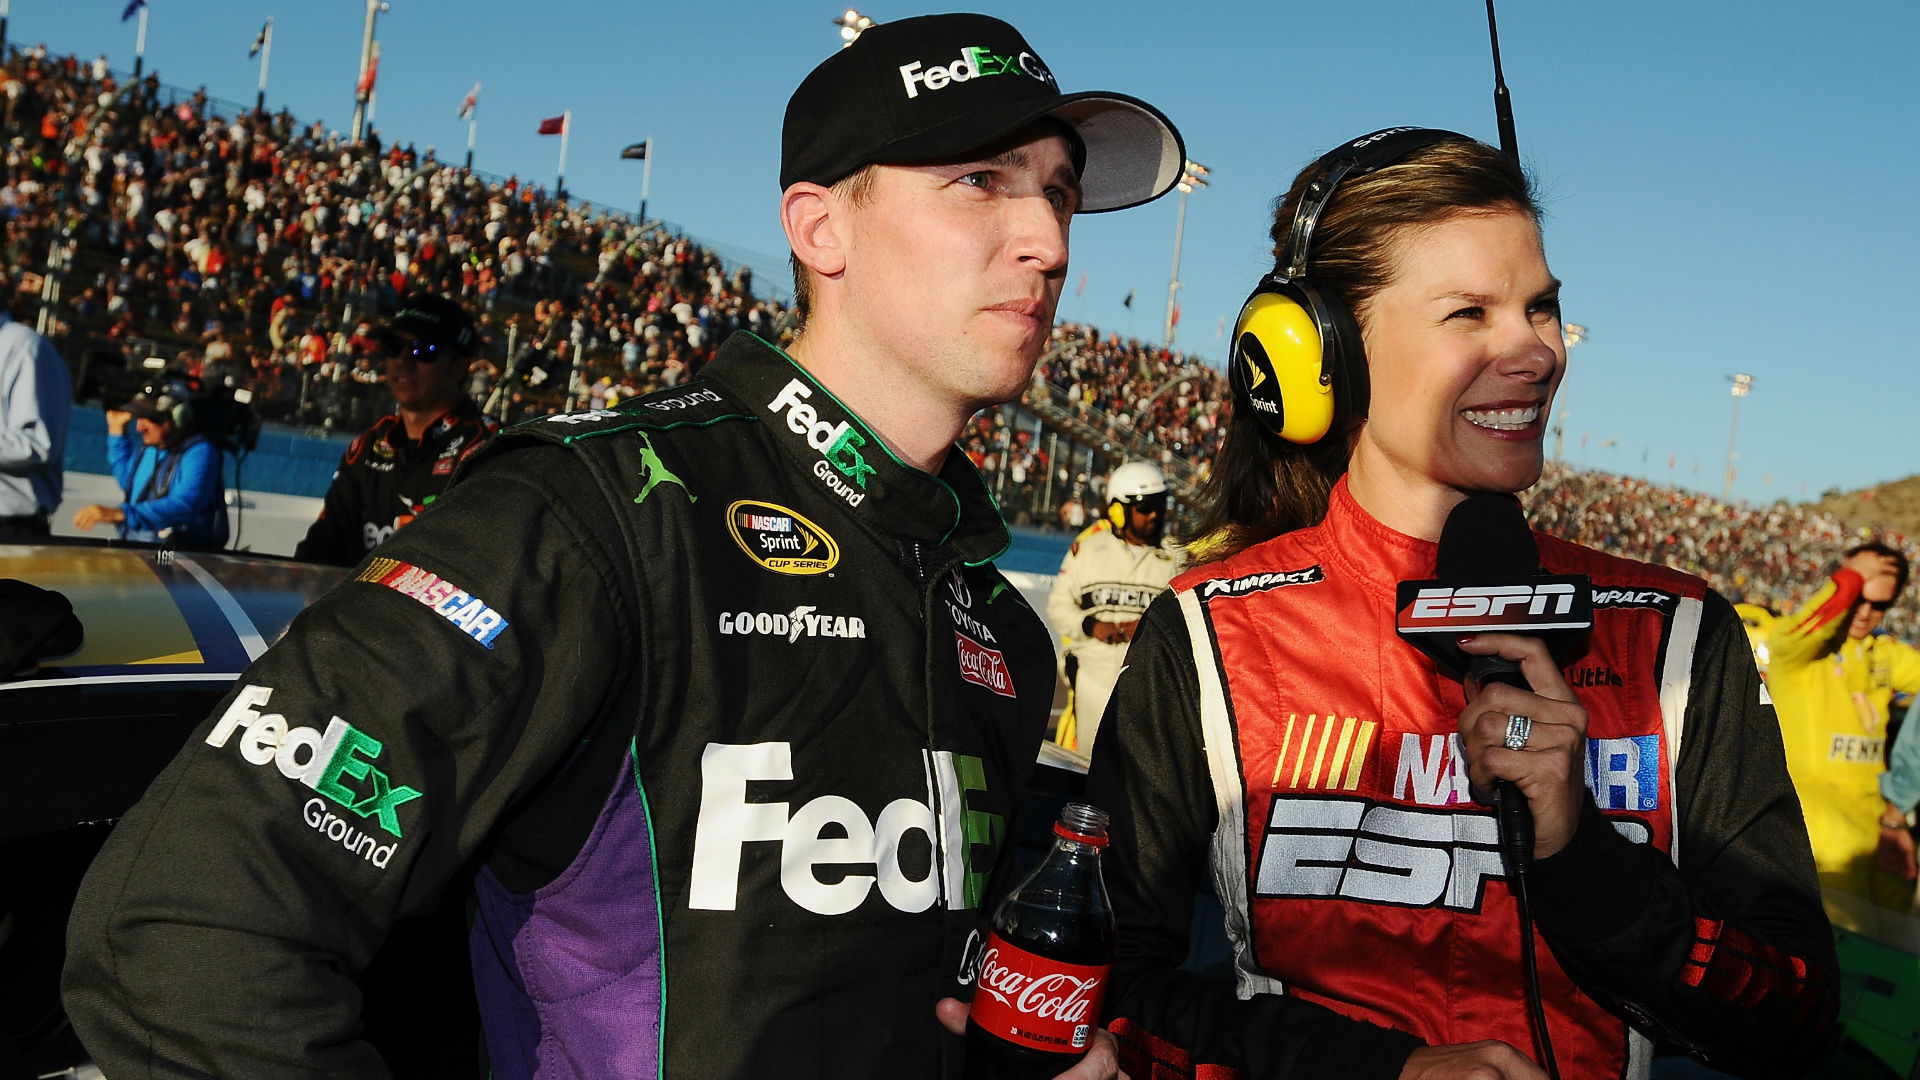 Ford EcoBoost 400 odds - Sprint Cup favorite priced to win season's final race